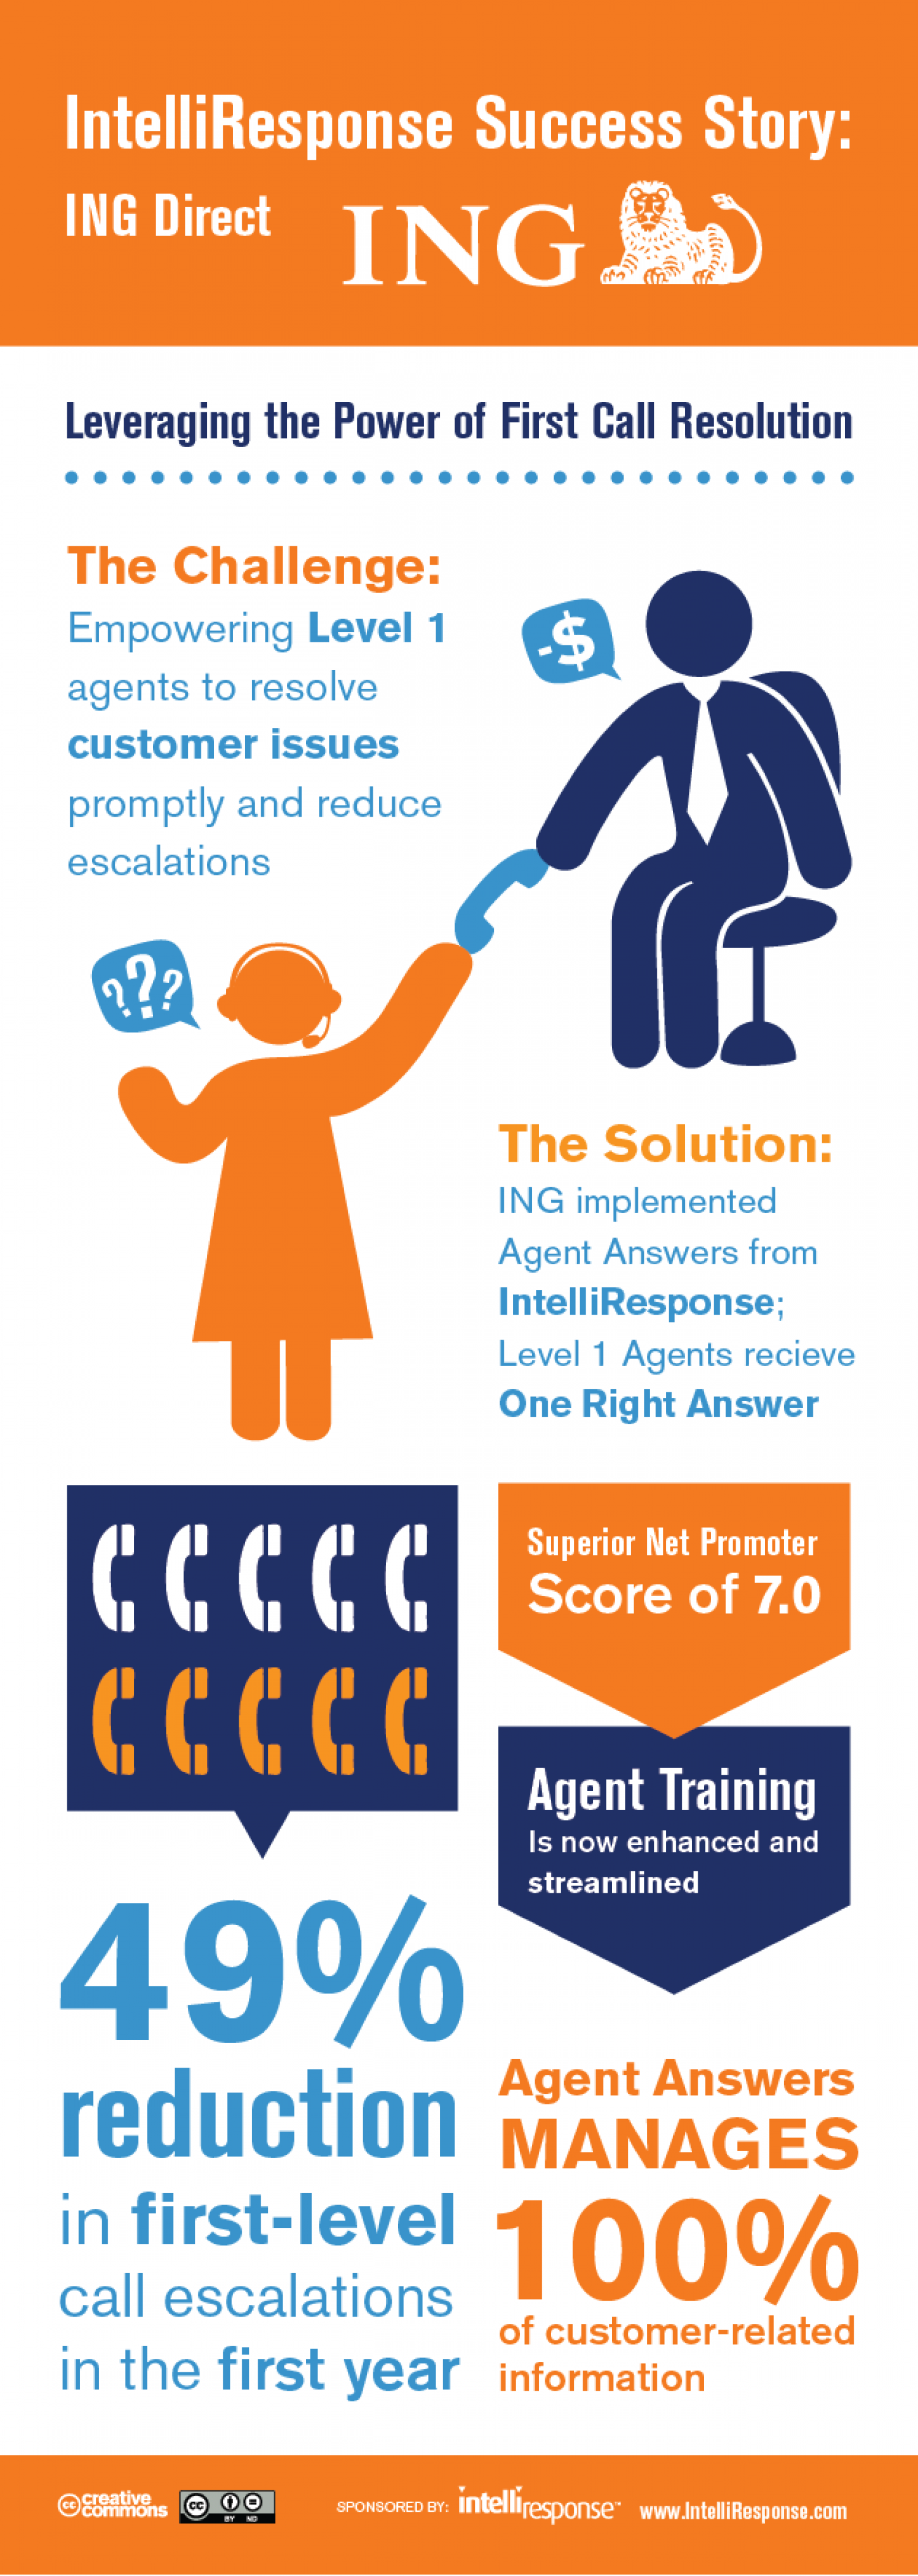 ING Bank Reduces Call Center Escalations By 50%! Infographic